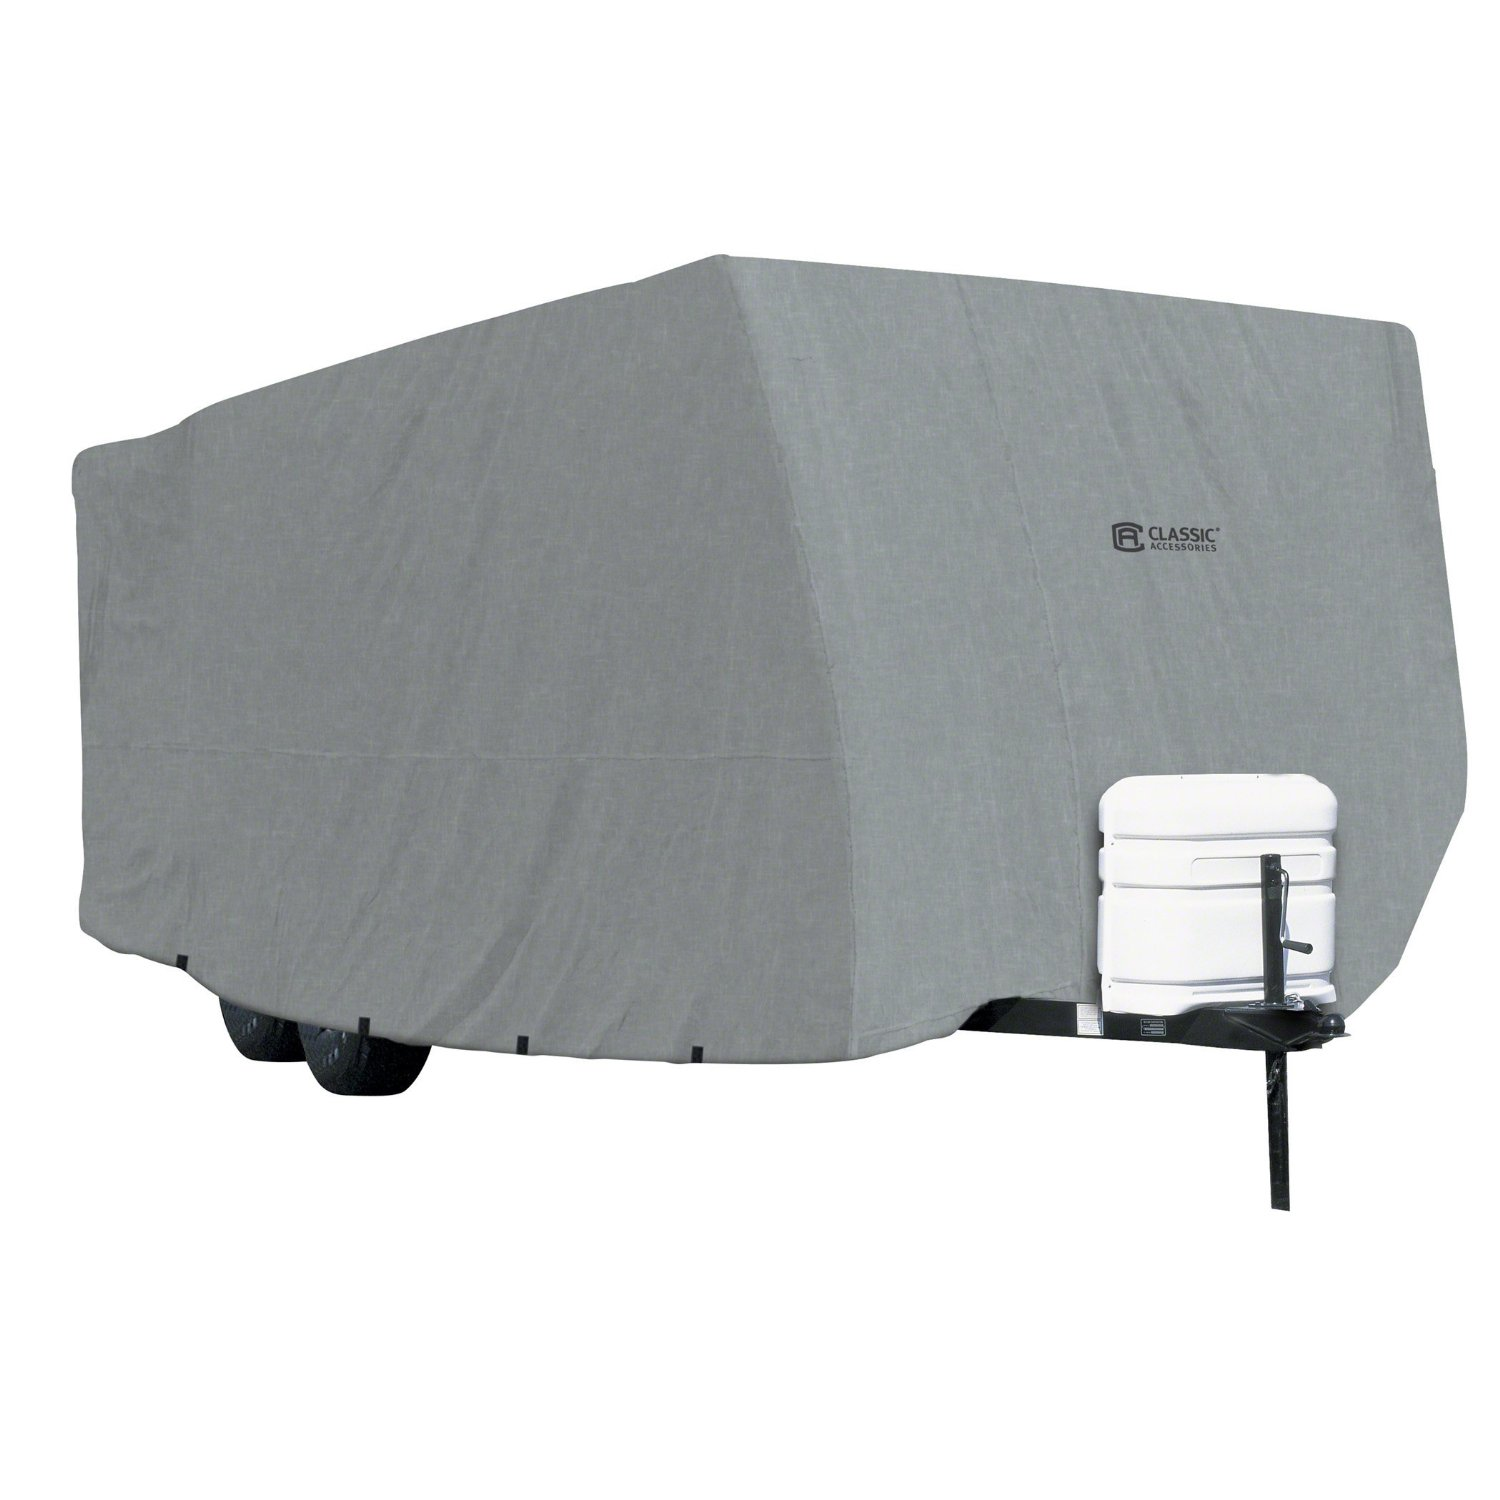 80-214-201001-00 Classic Accessories RV Cover For Travel Trailers